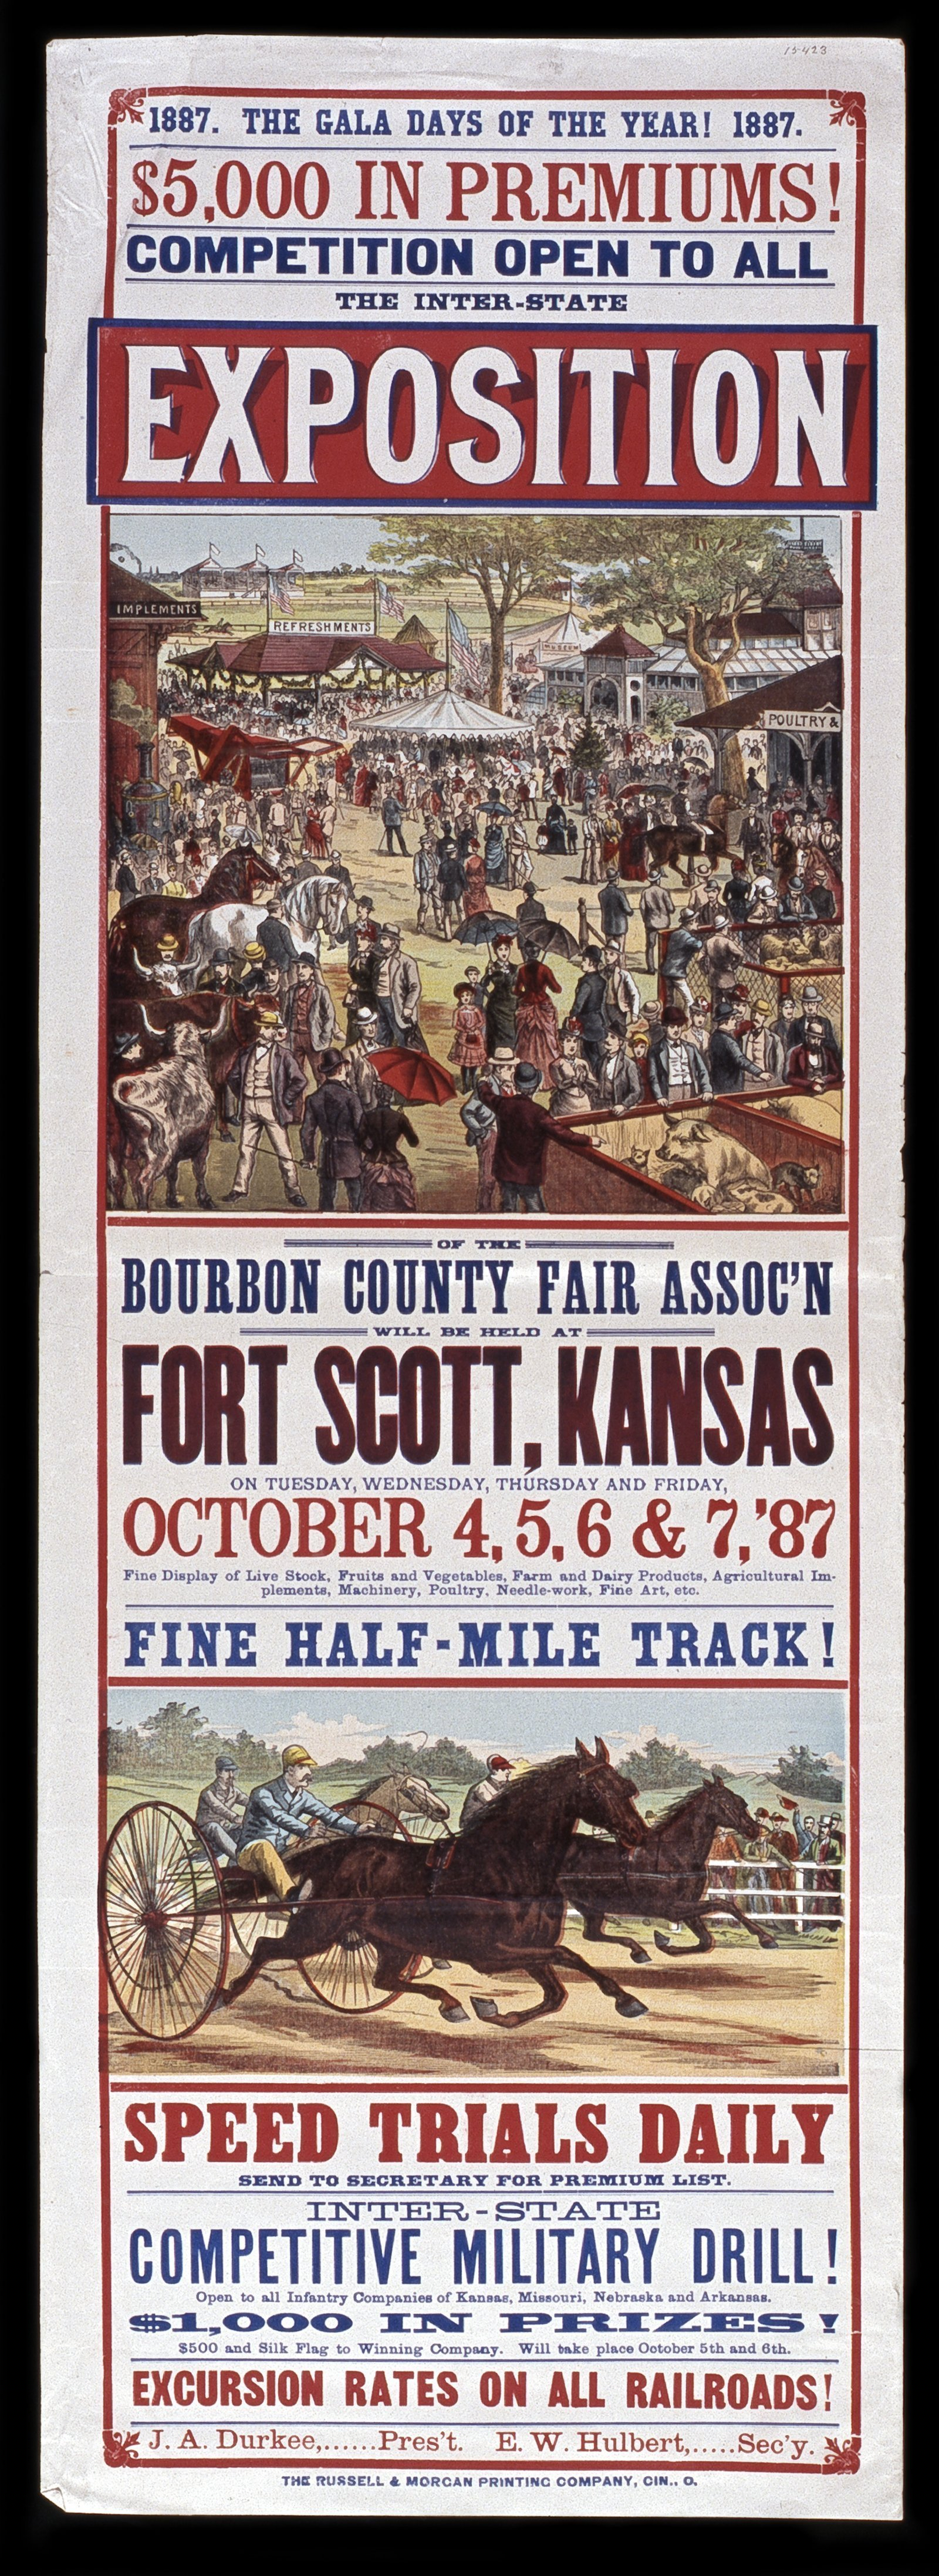 The inter-state exposition of the Bourbon County Fair Association